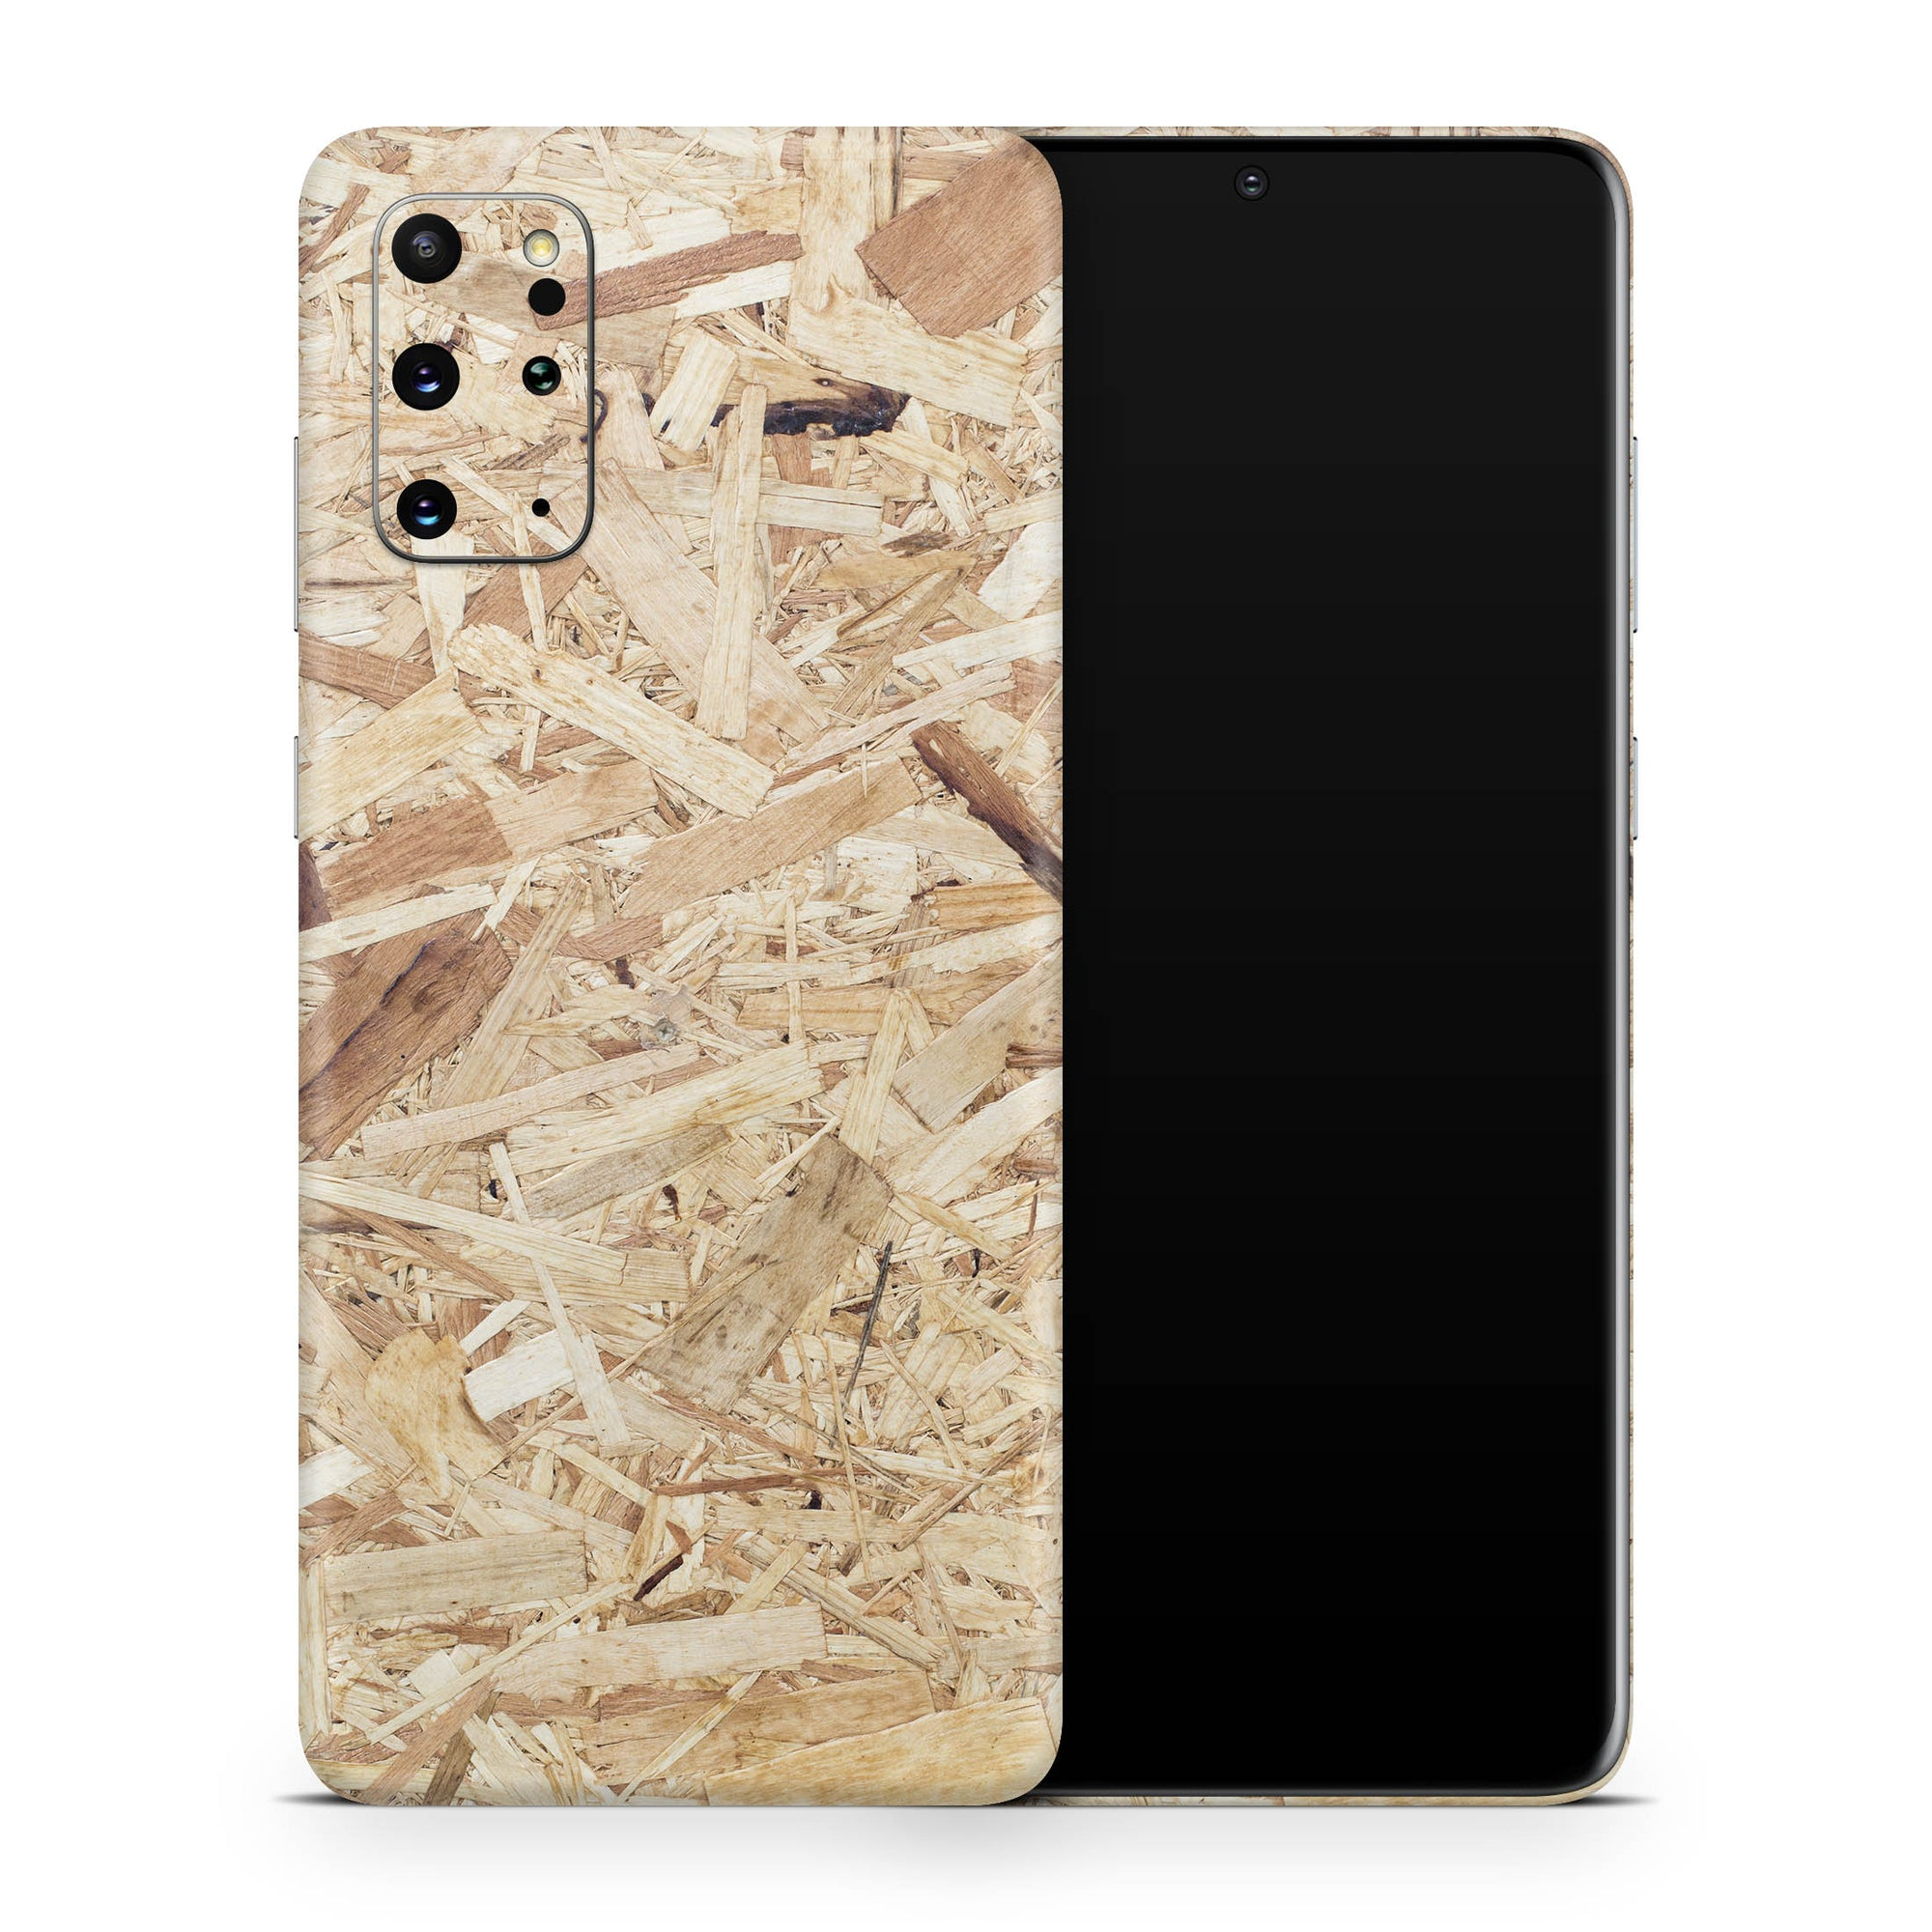 Plywood Galaxy S20 Plus Skin + Case-Uniqfind